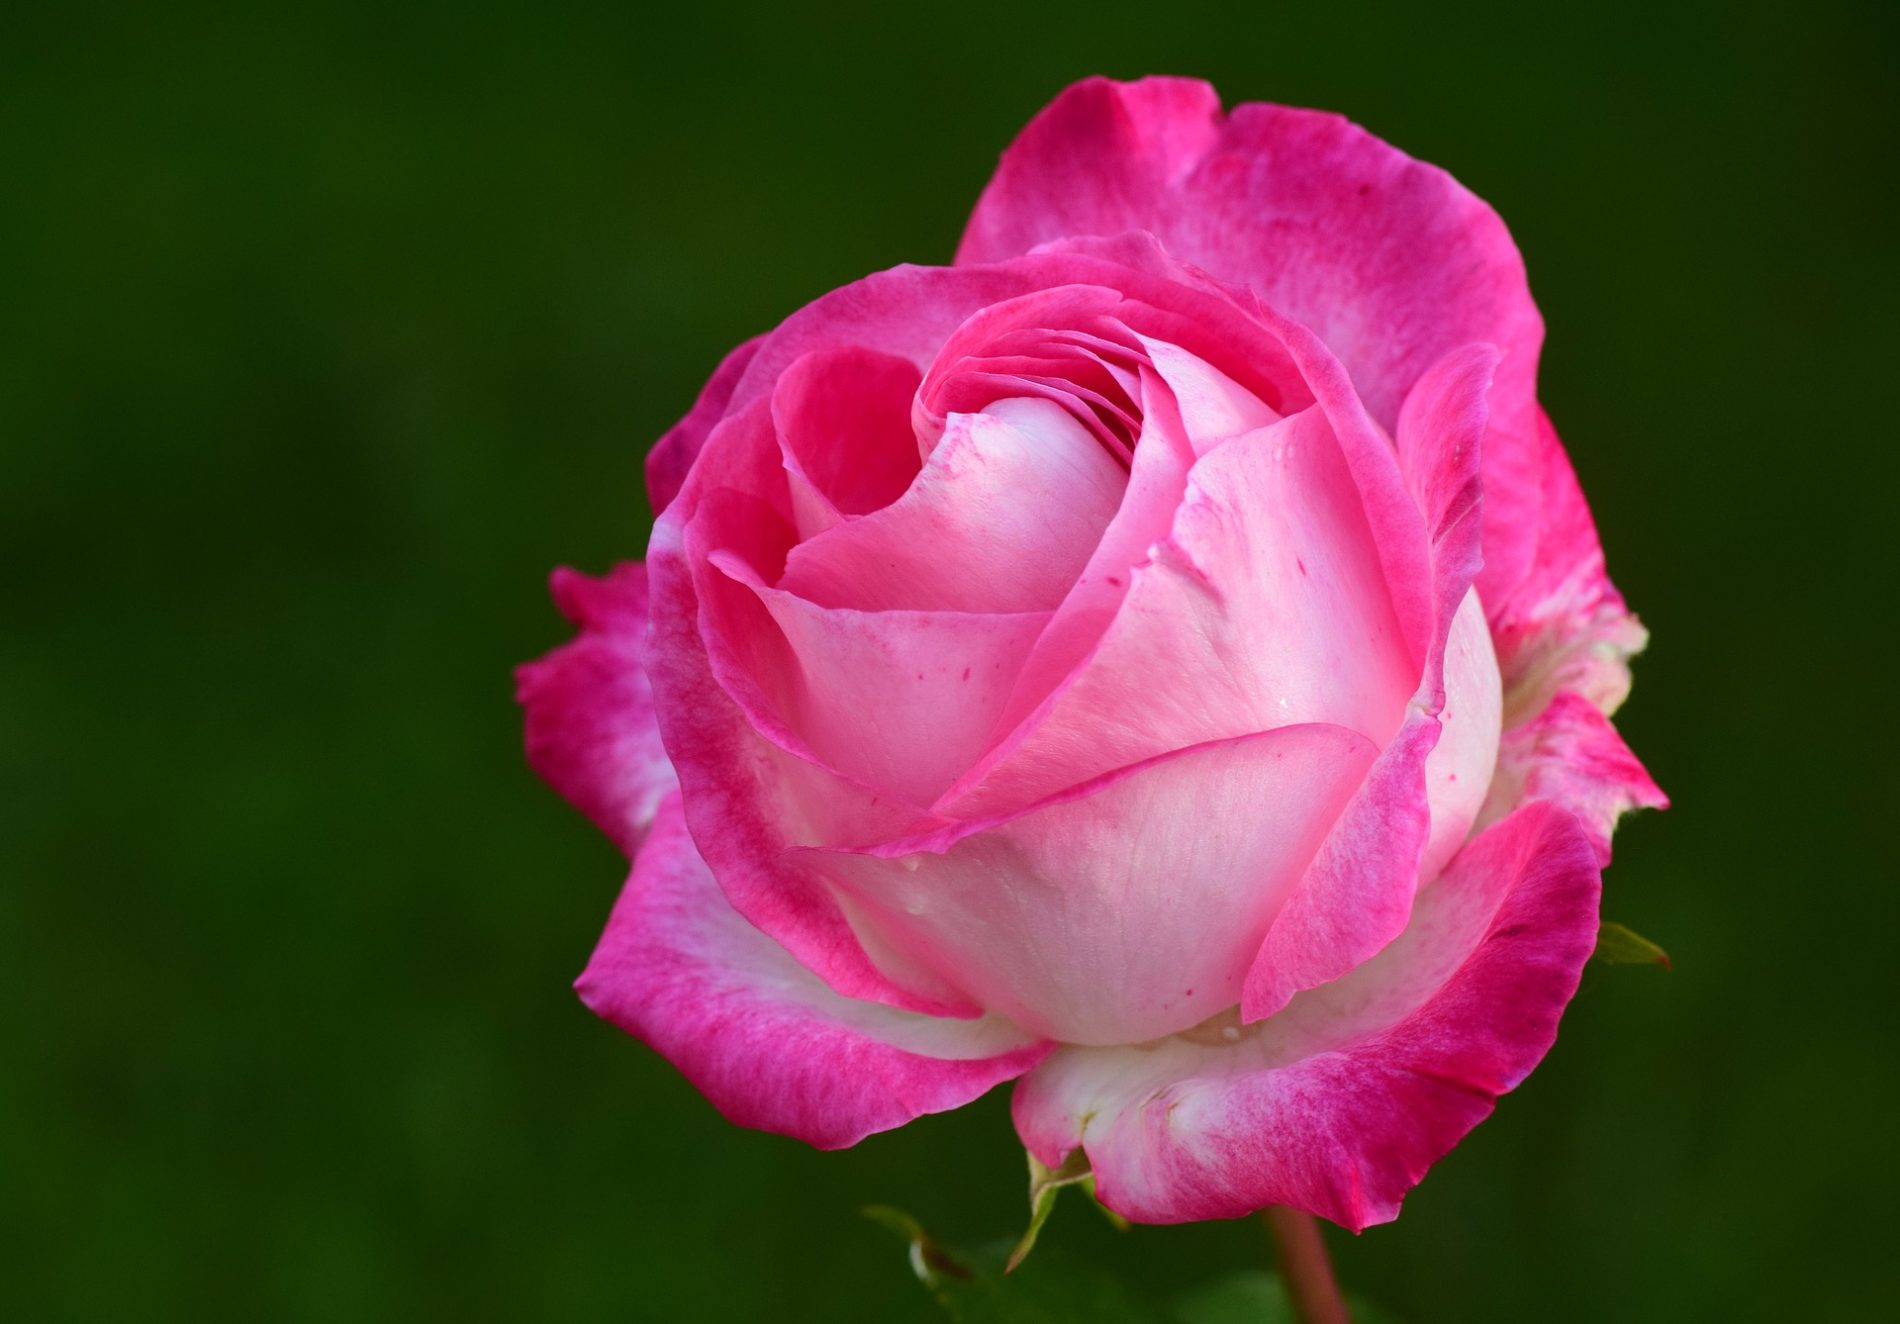 A Rose by Any Other Name- Spoken Garden